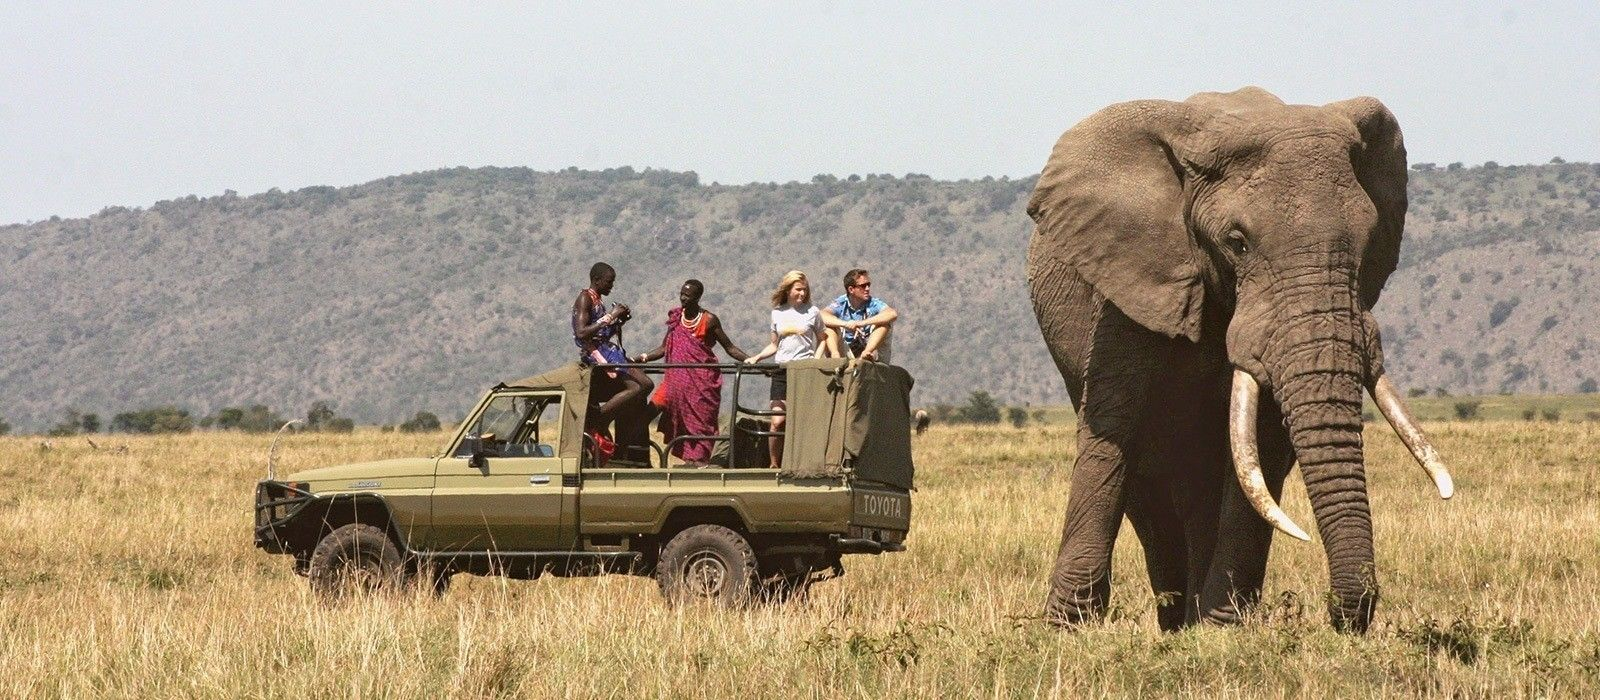 Safari Highlights of Kenya Tour Trip 3